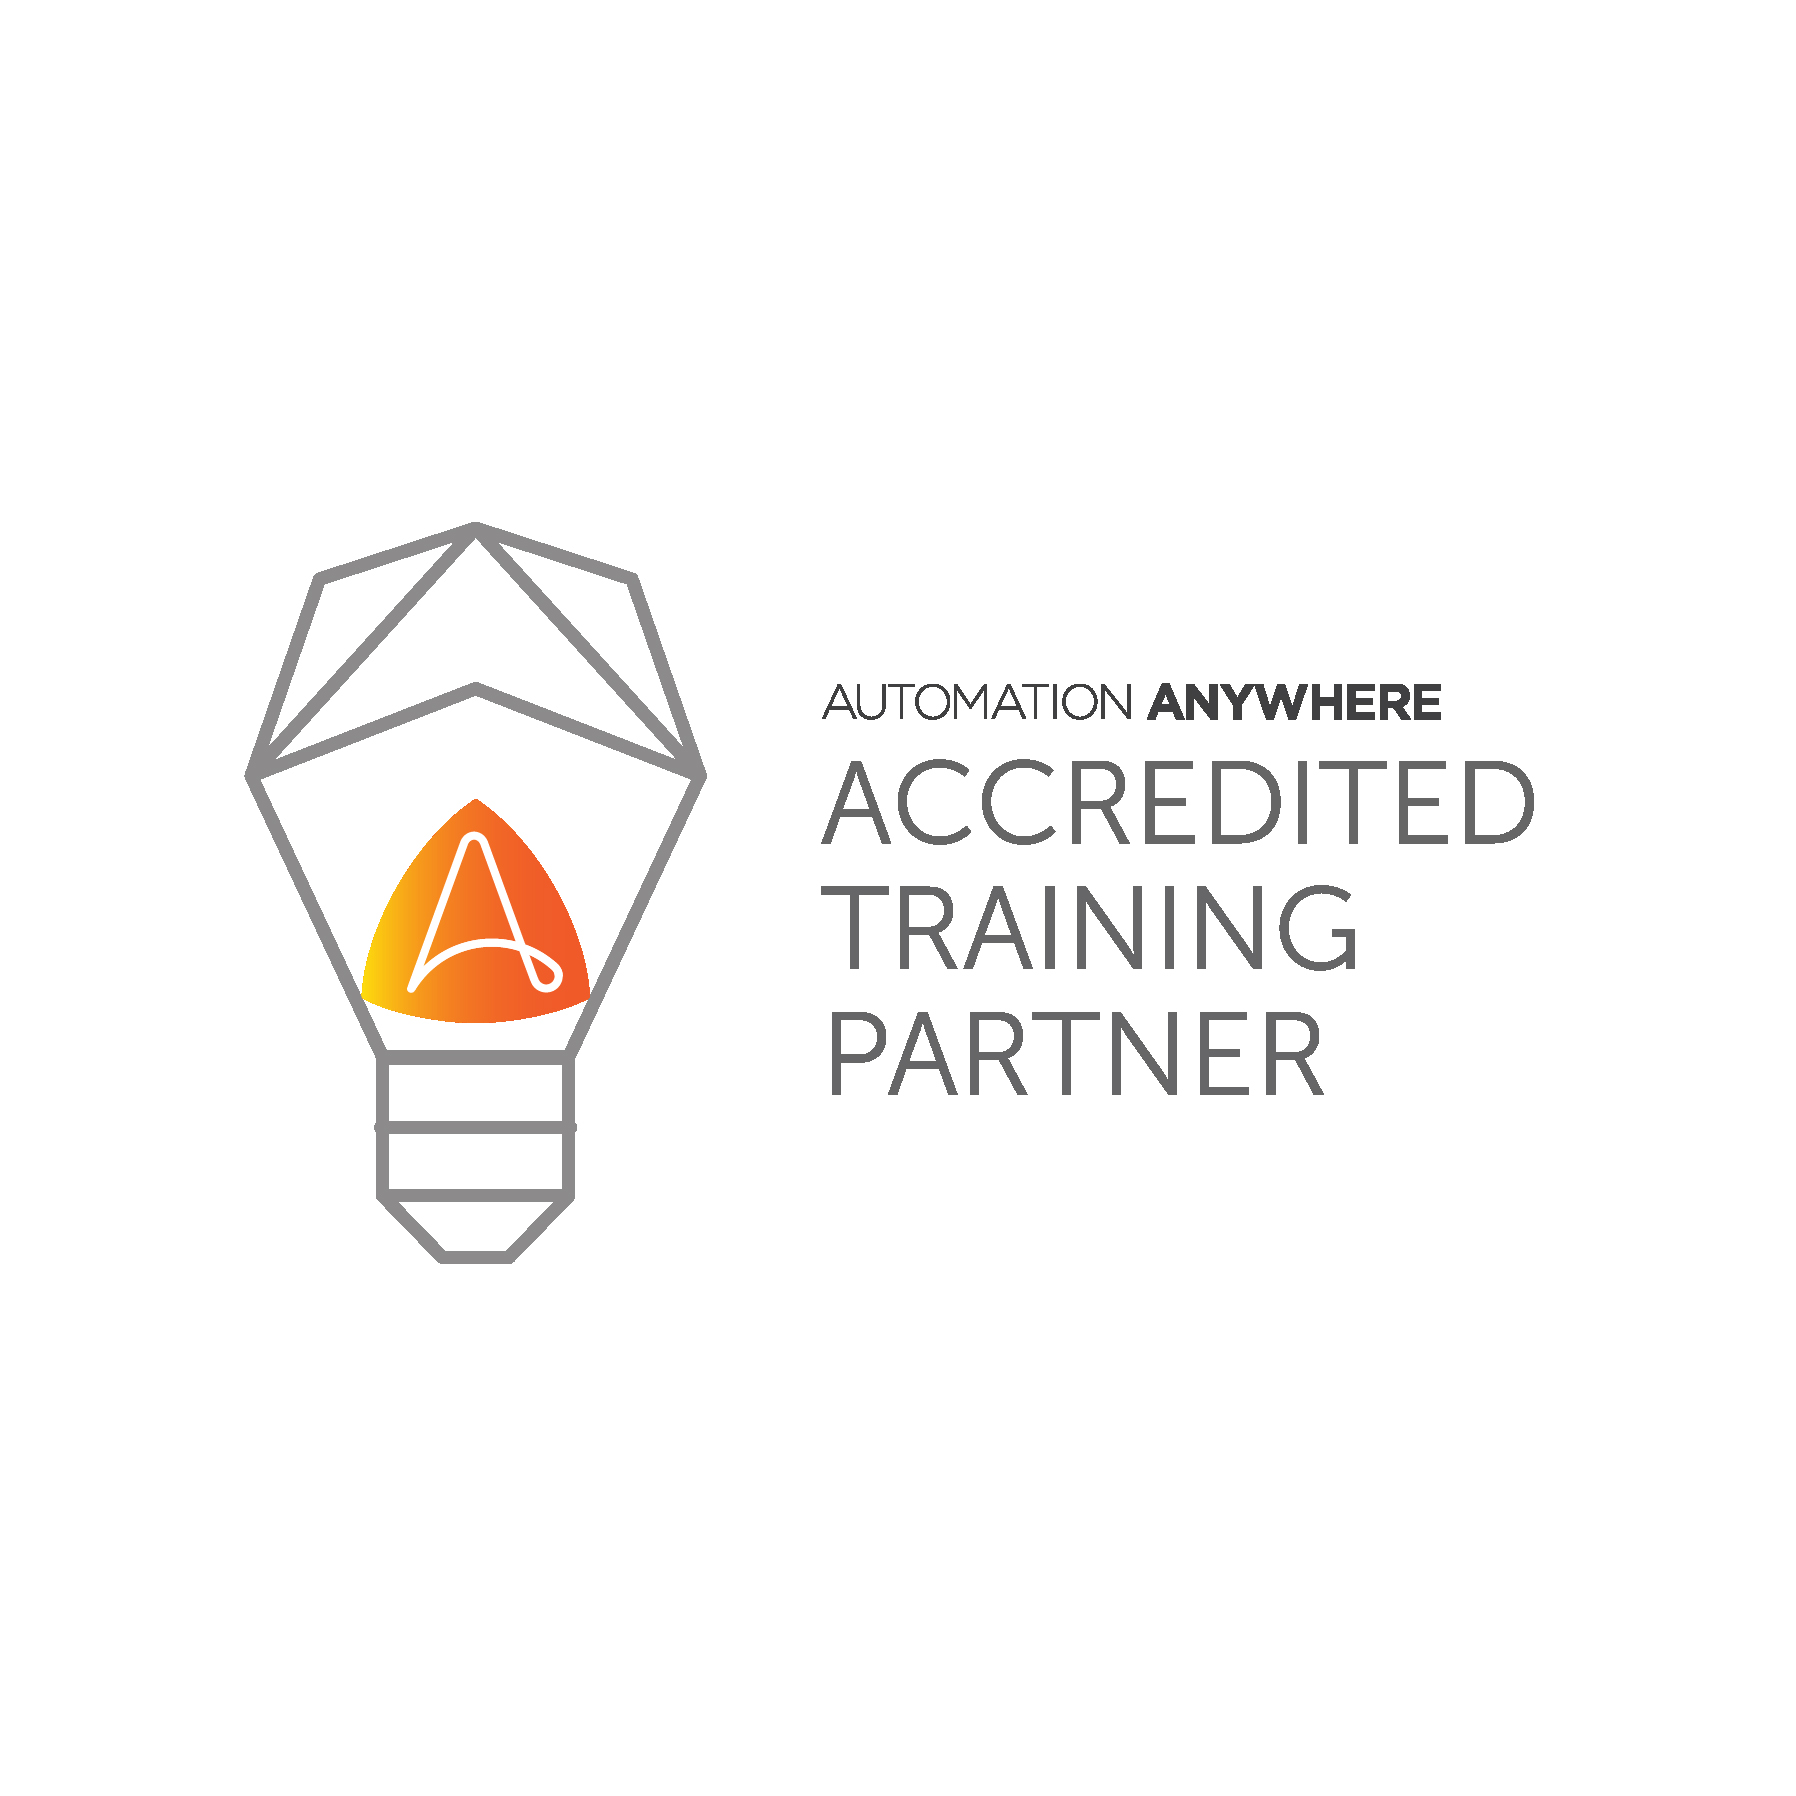 The RPA Academy Announces Its Appointment as an Accredited Training